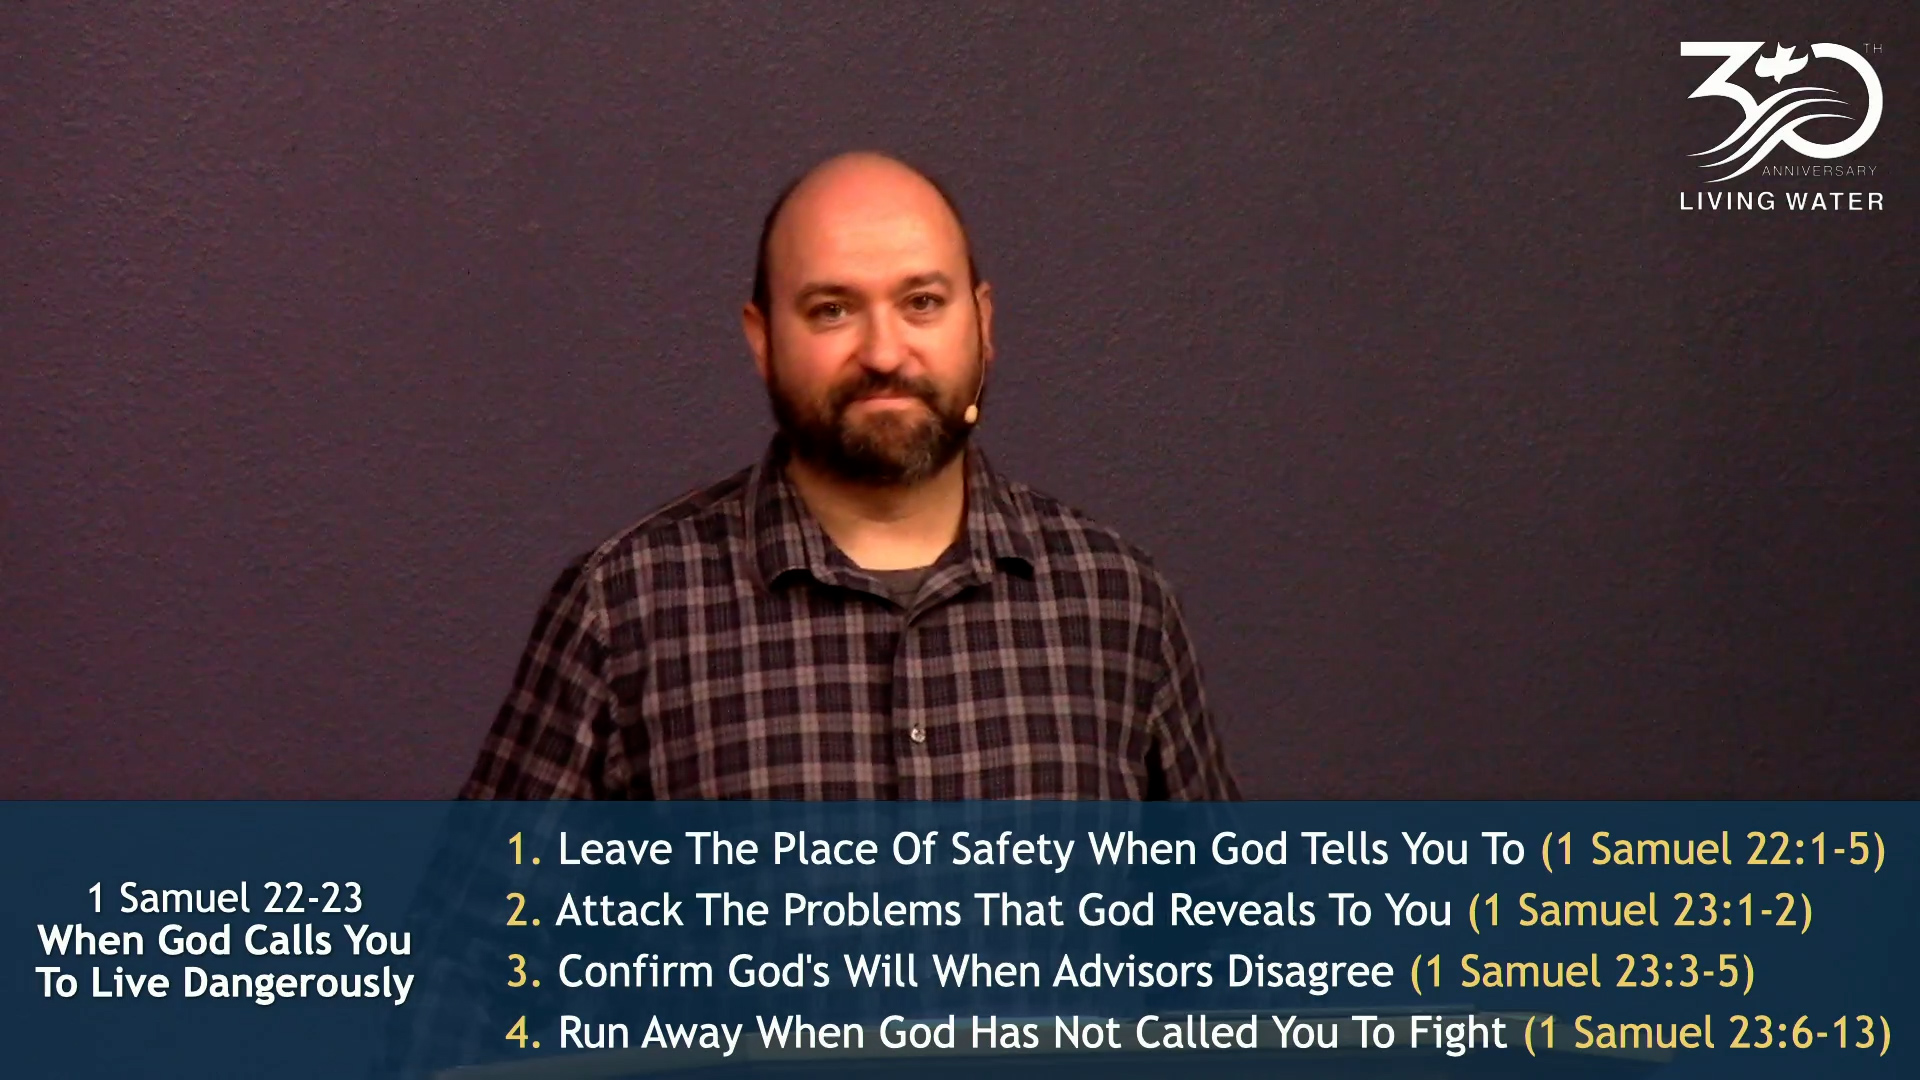 1 Samuel 22-23, When God Calls You To Live Dangerously